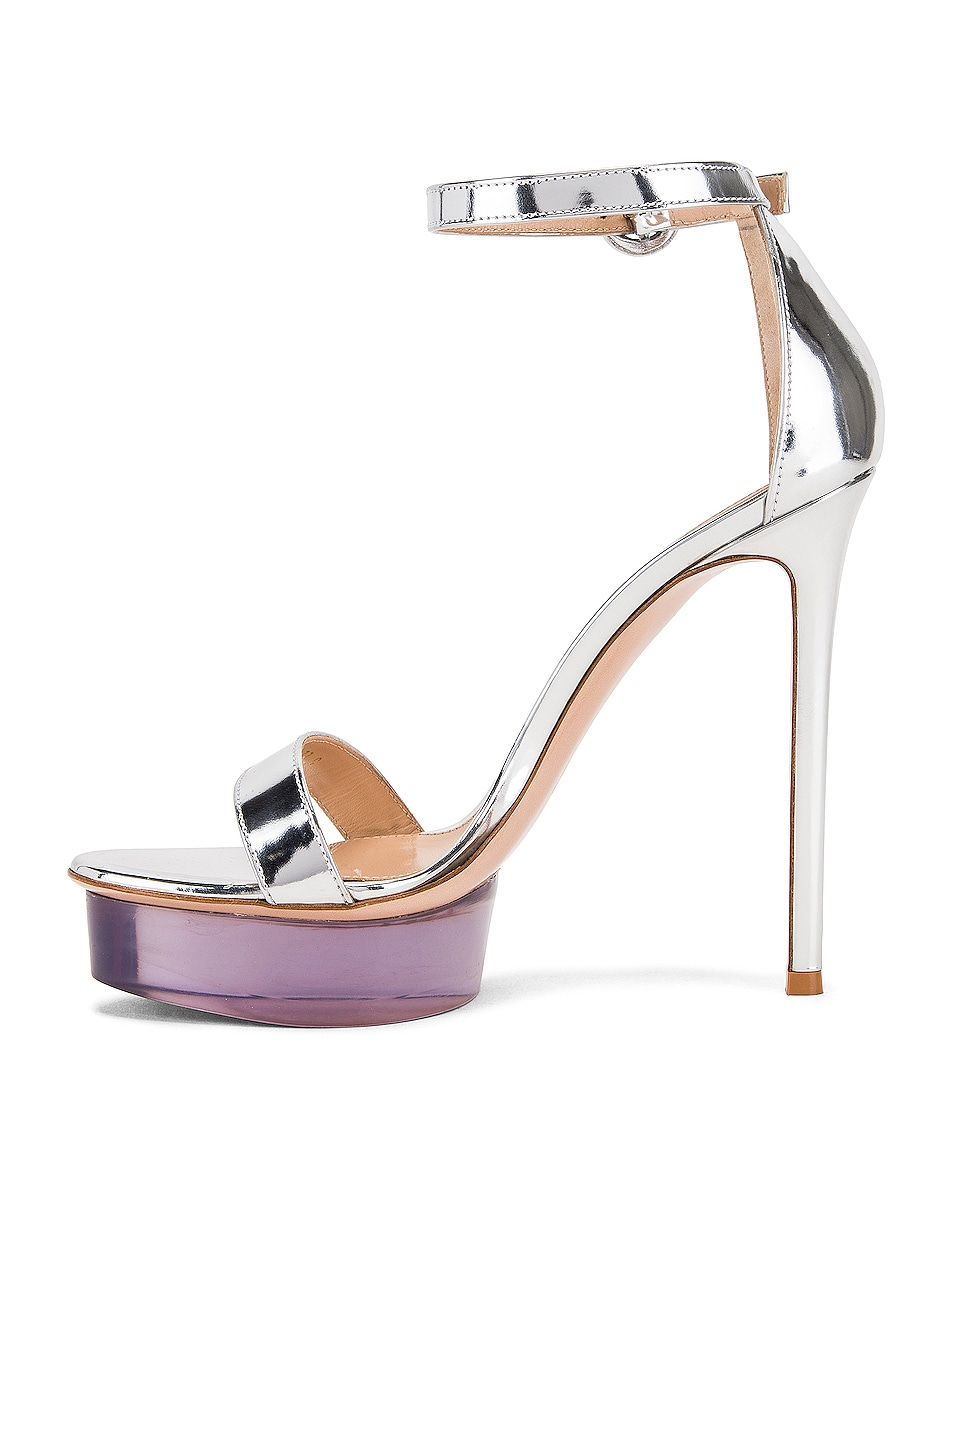 Image 5 of Gianvito Rossi Ankle Strap Platform Heels in Silver